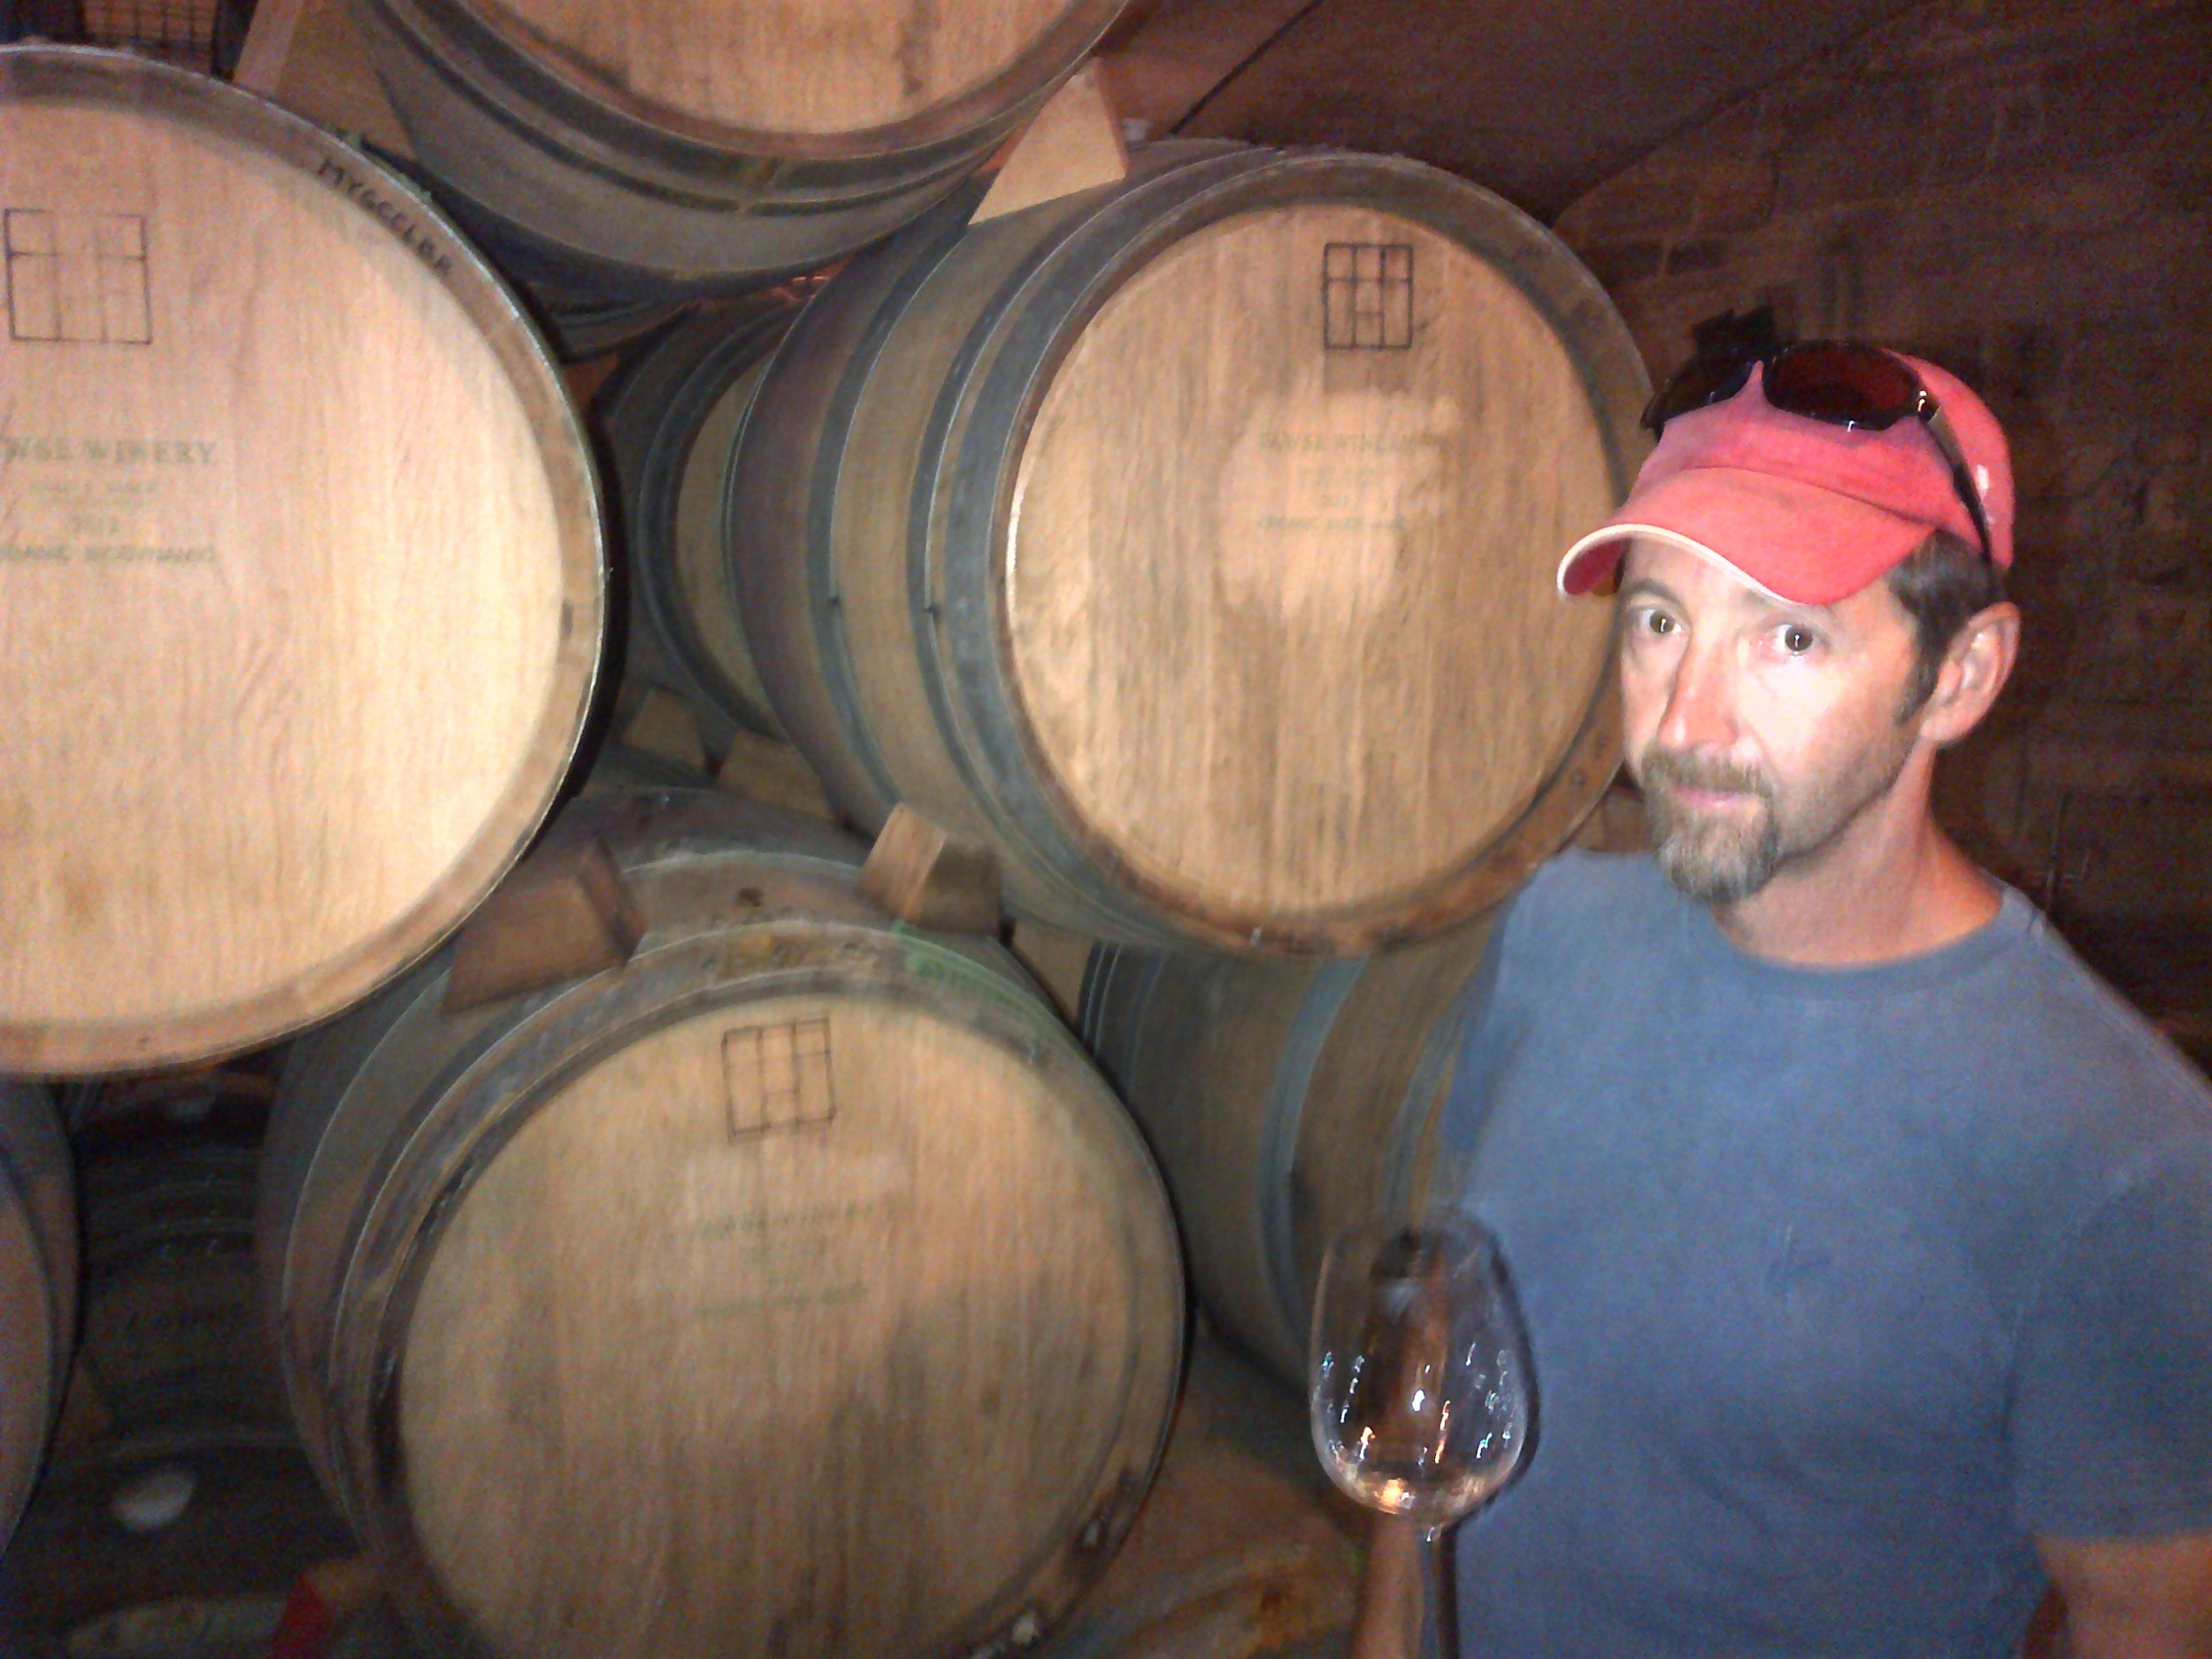 Barrel tasting Chardonnays with Paul Pender in the cellar at Tawse.